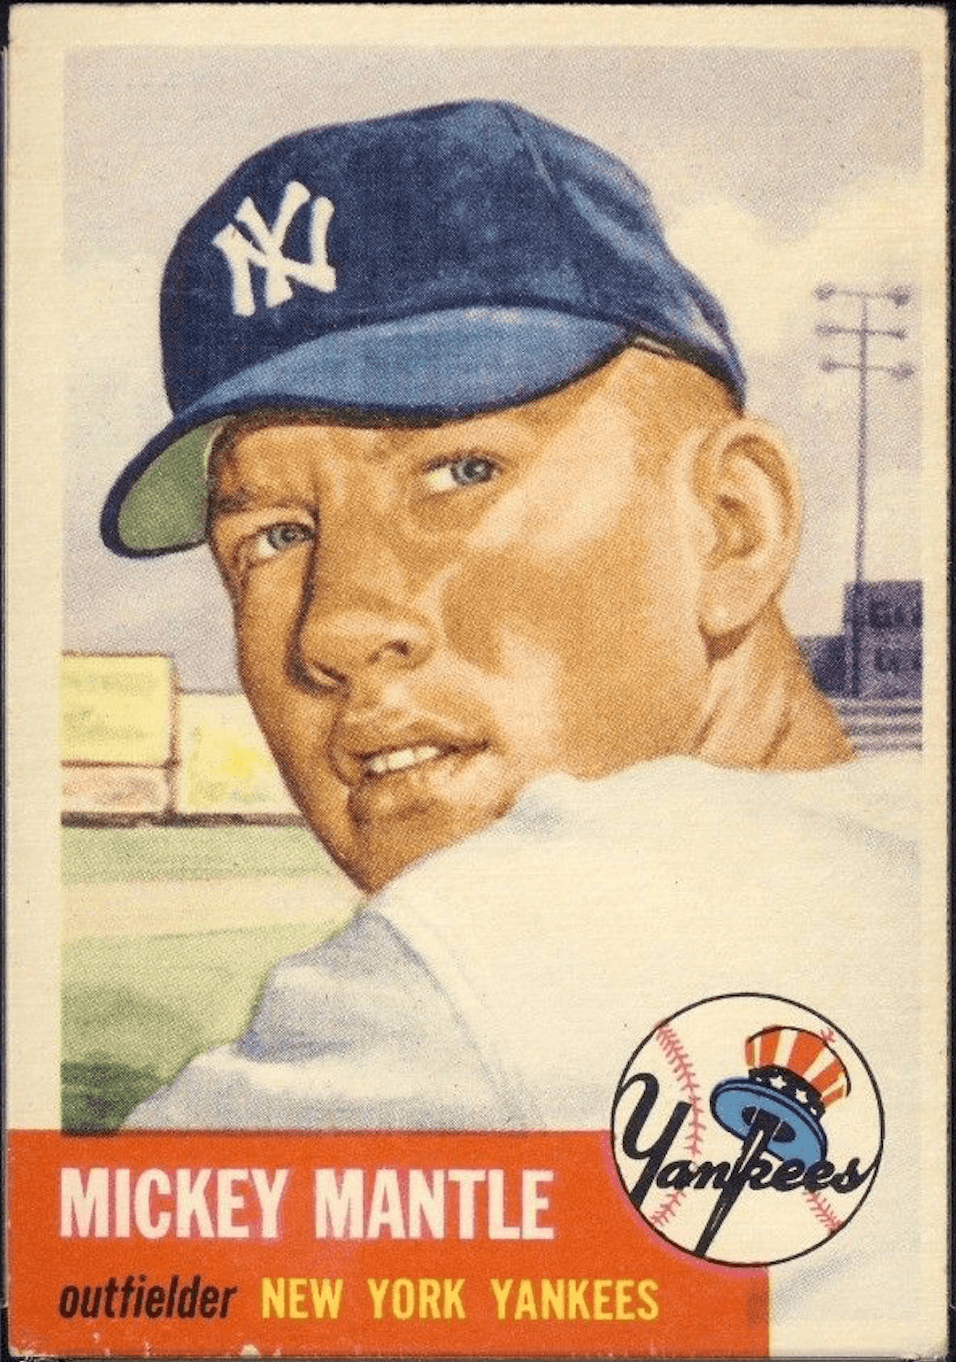 1953 Topps Mickey Mantle Baseball Card With Chipping on Edges and Poor Centering